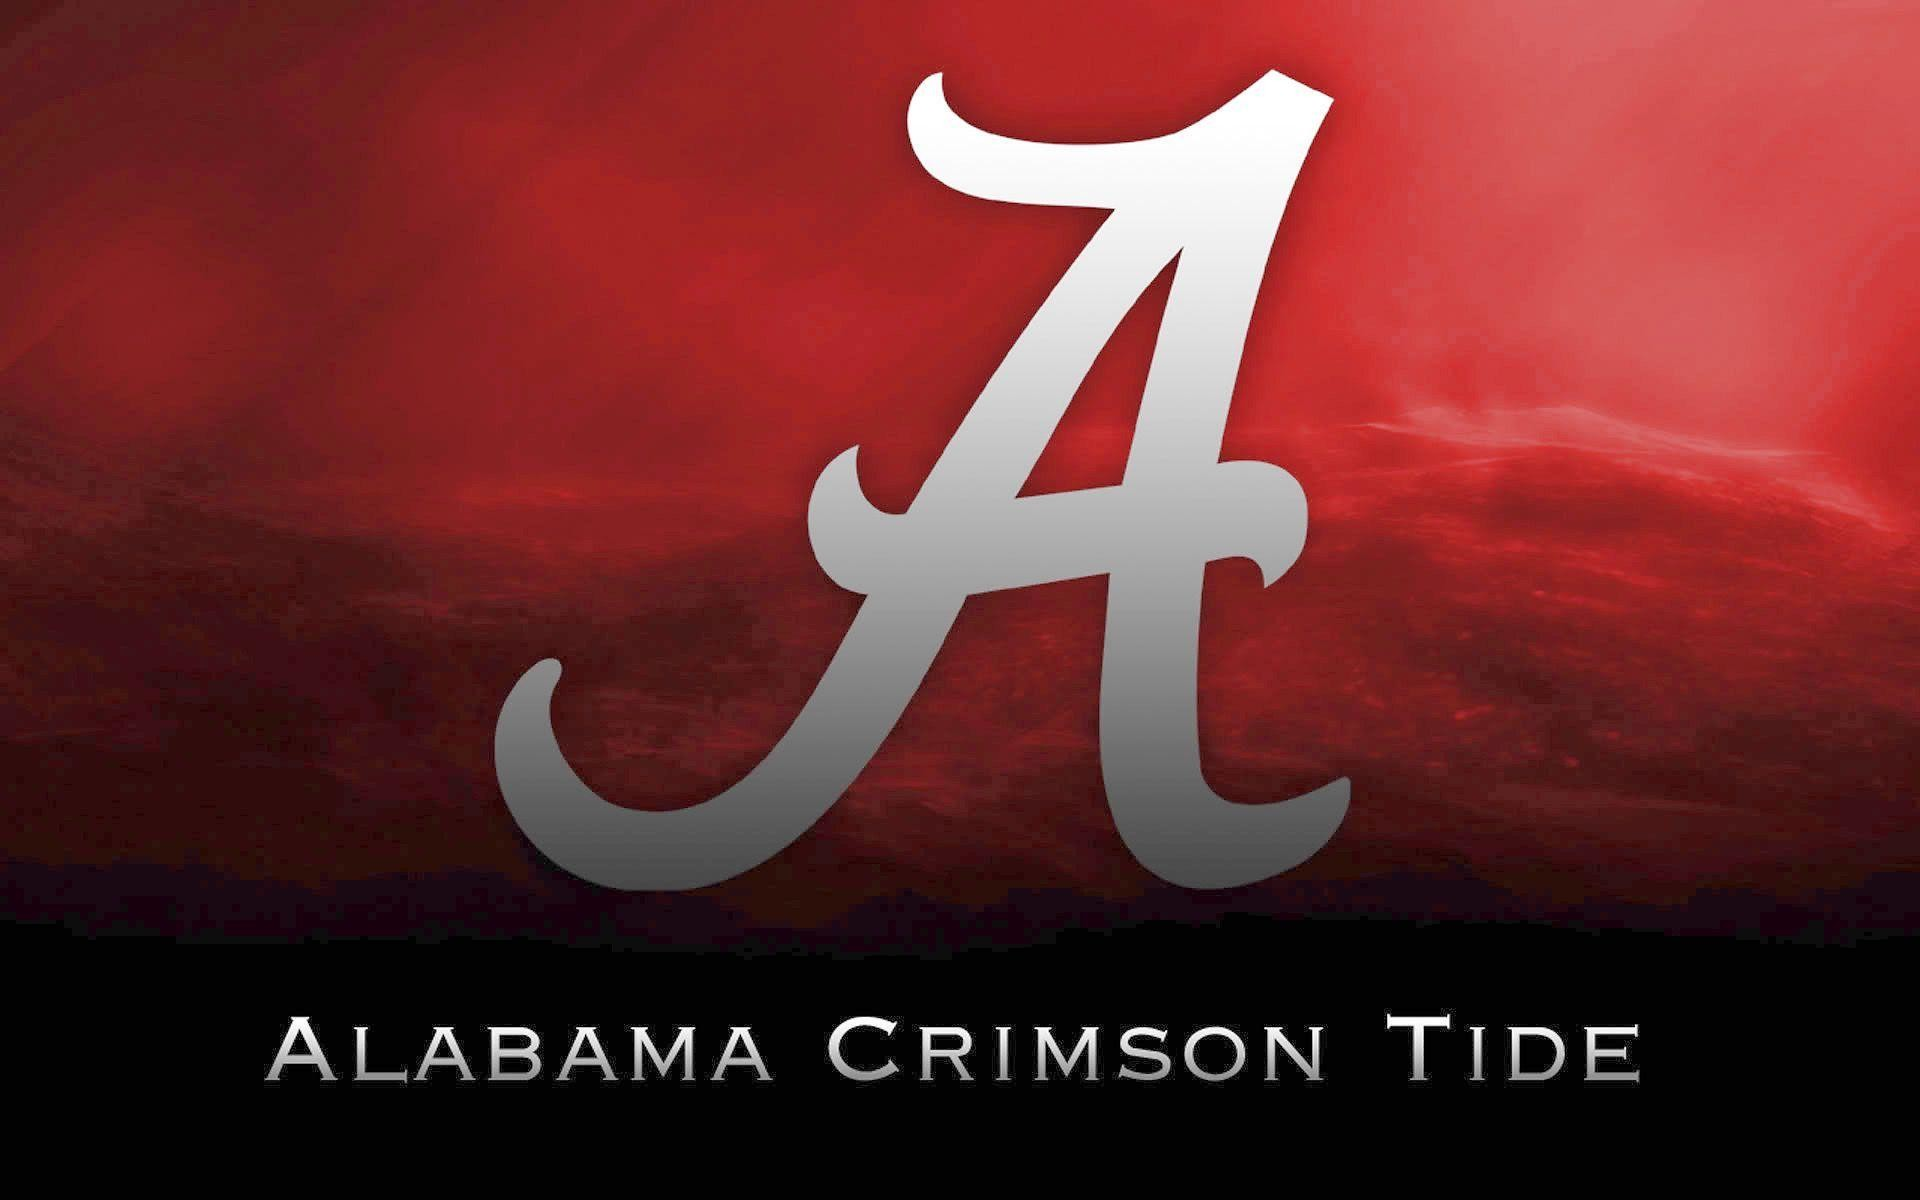 Alabama crimson tide wallpaper 68 images 1920x1200 alabama wallpapers full hd wallpaper search sciox Gallery